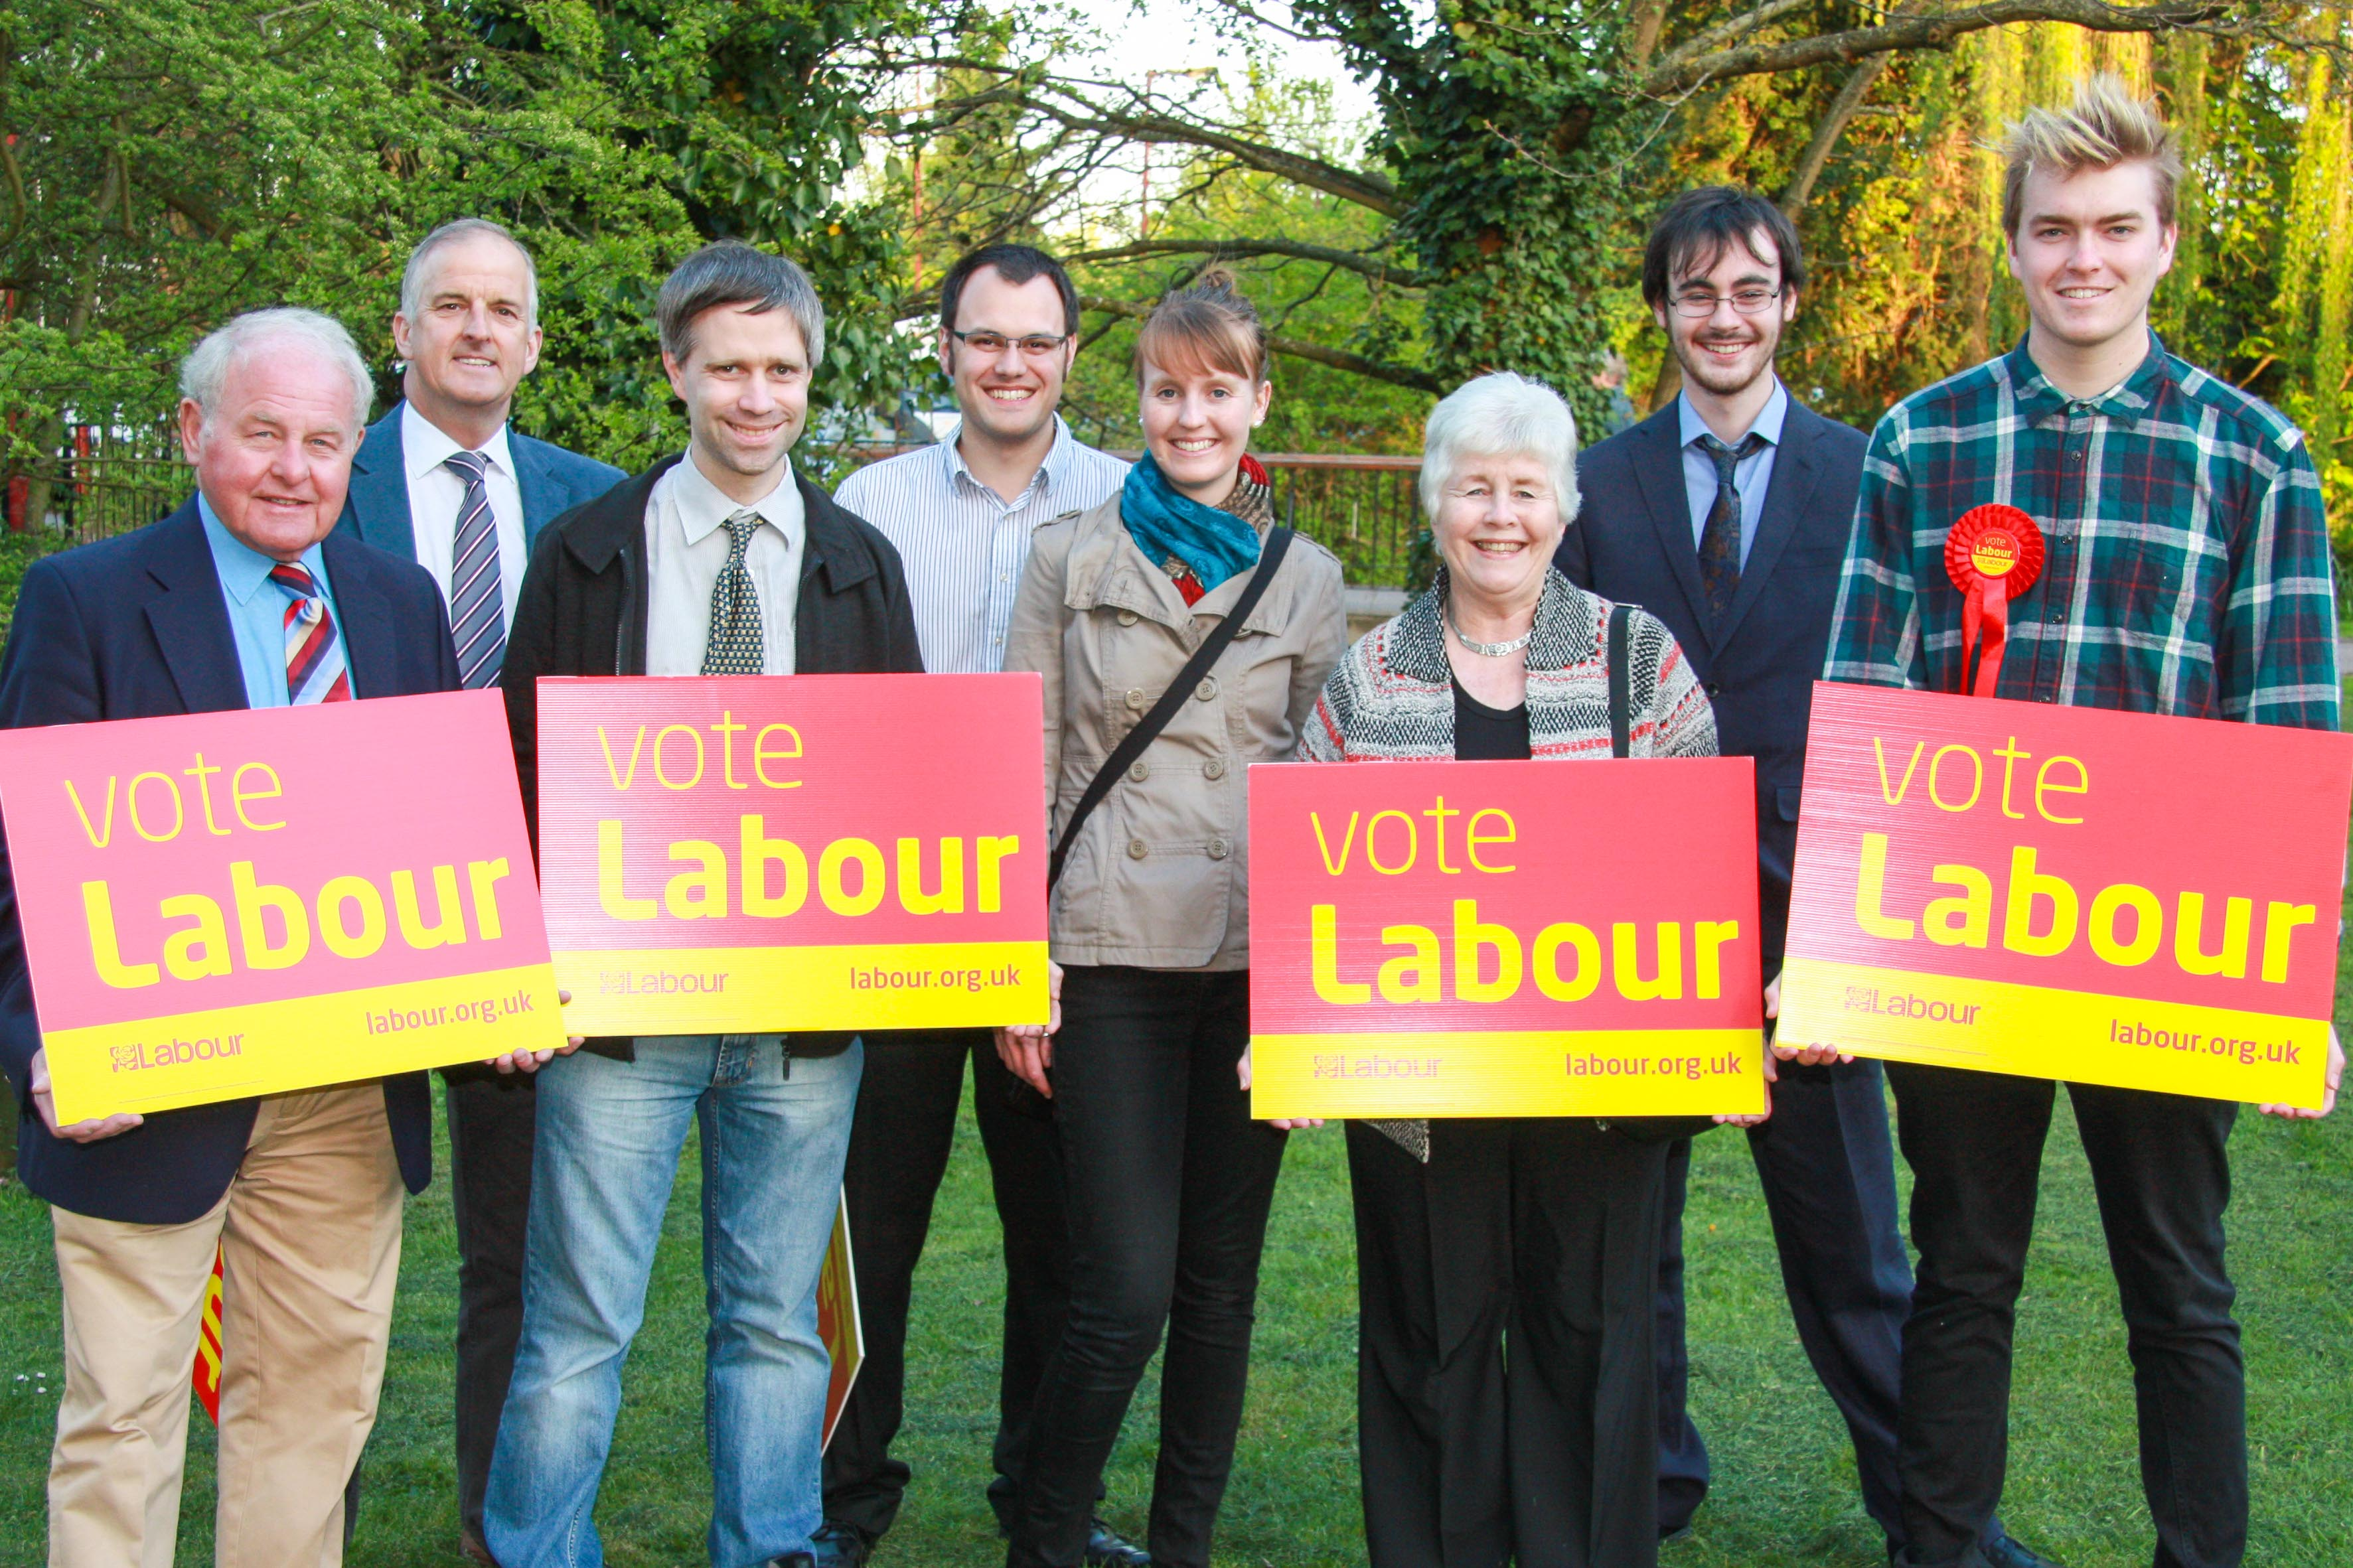 Group_shot_Vote_Labour_(1_of_1).jpg